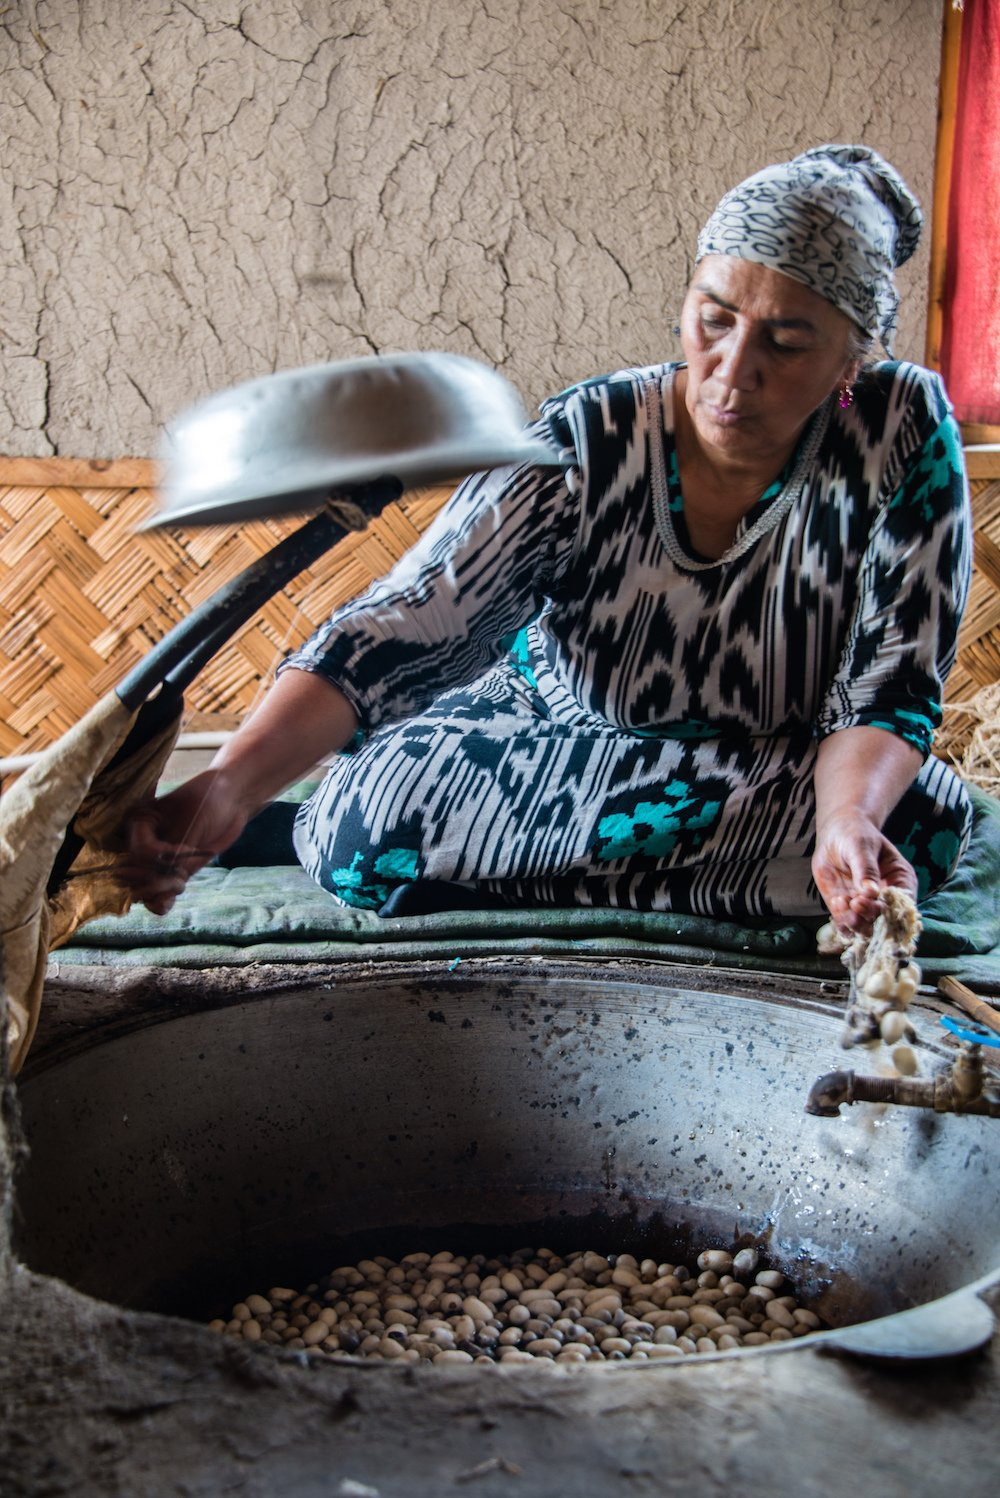 Woman boiling silk cocoons. Image: 2008+ under a CC licence